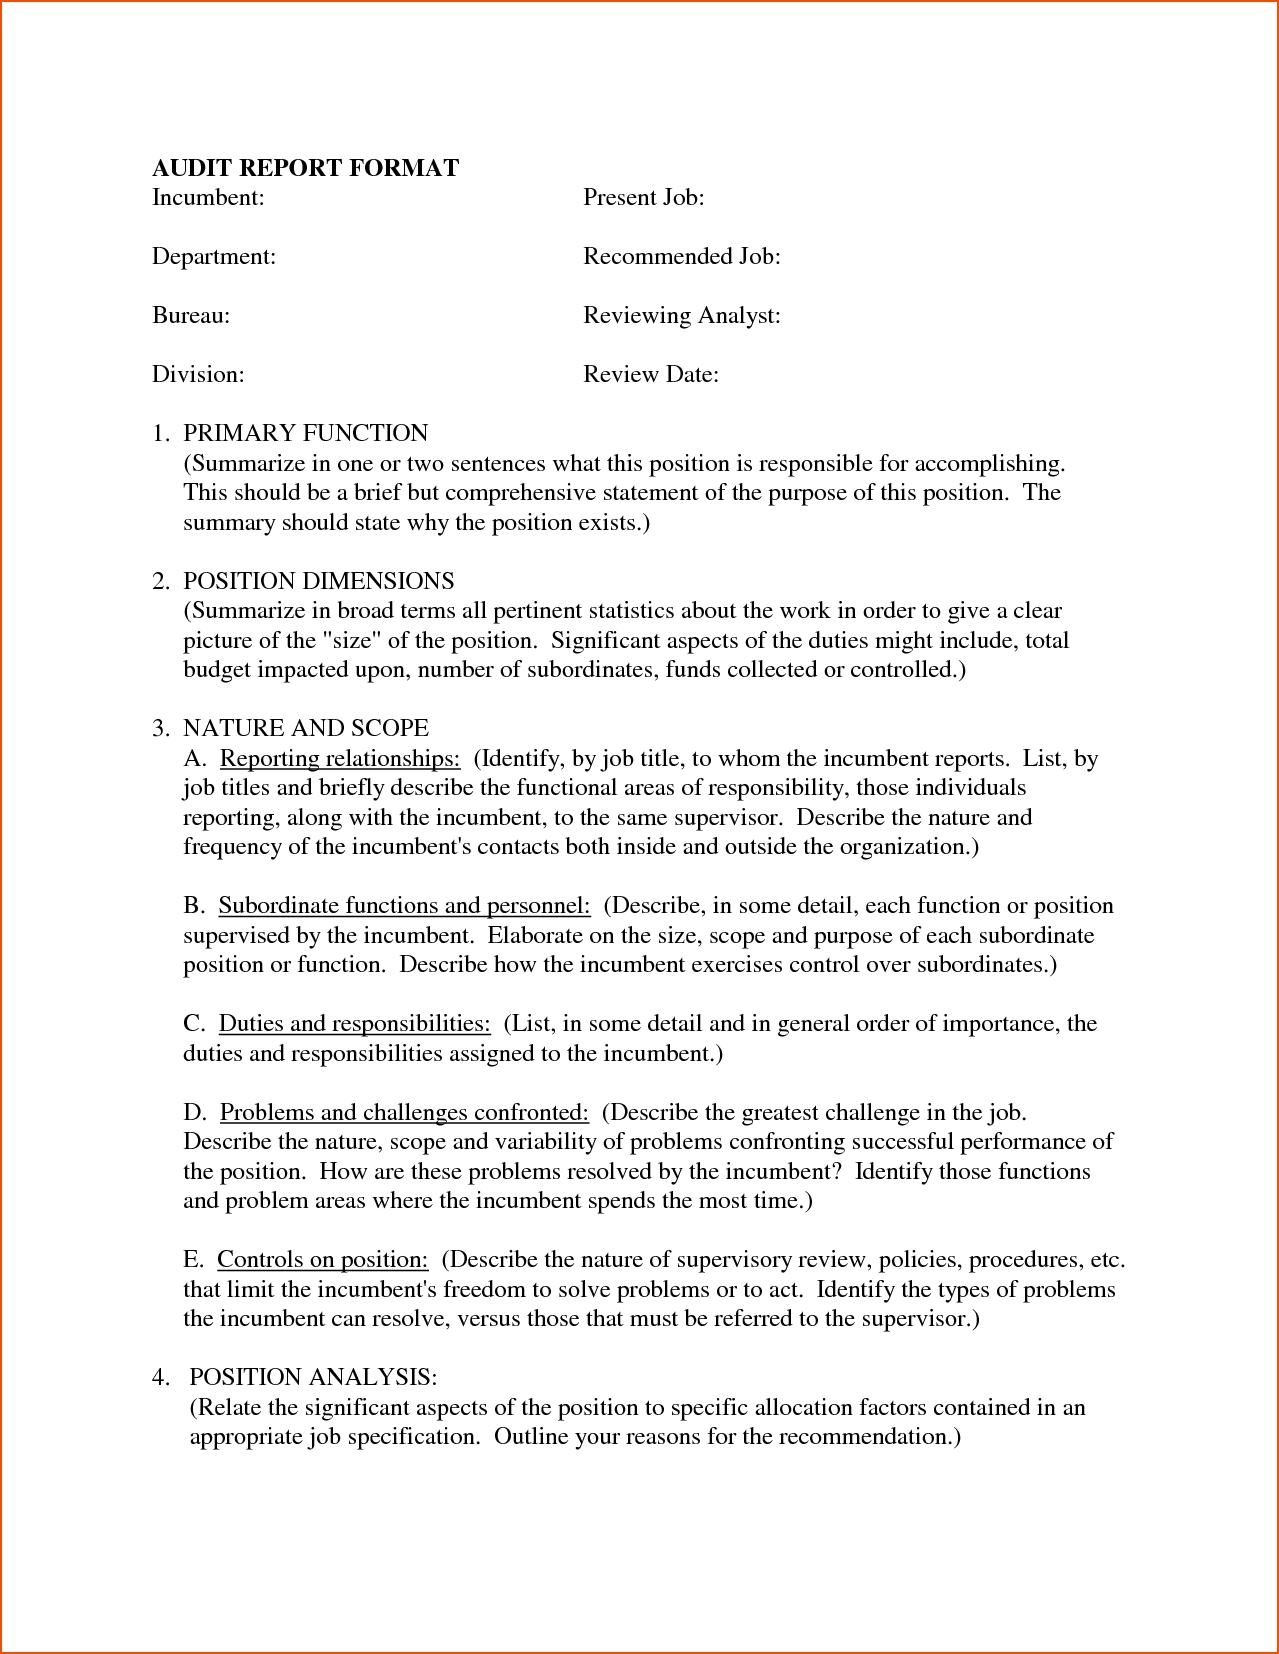 010 Business Report Format I0 Which List Best Describes The Organization Of An Argumentative Essay Fearsome Brainly Full